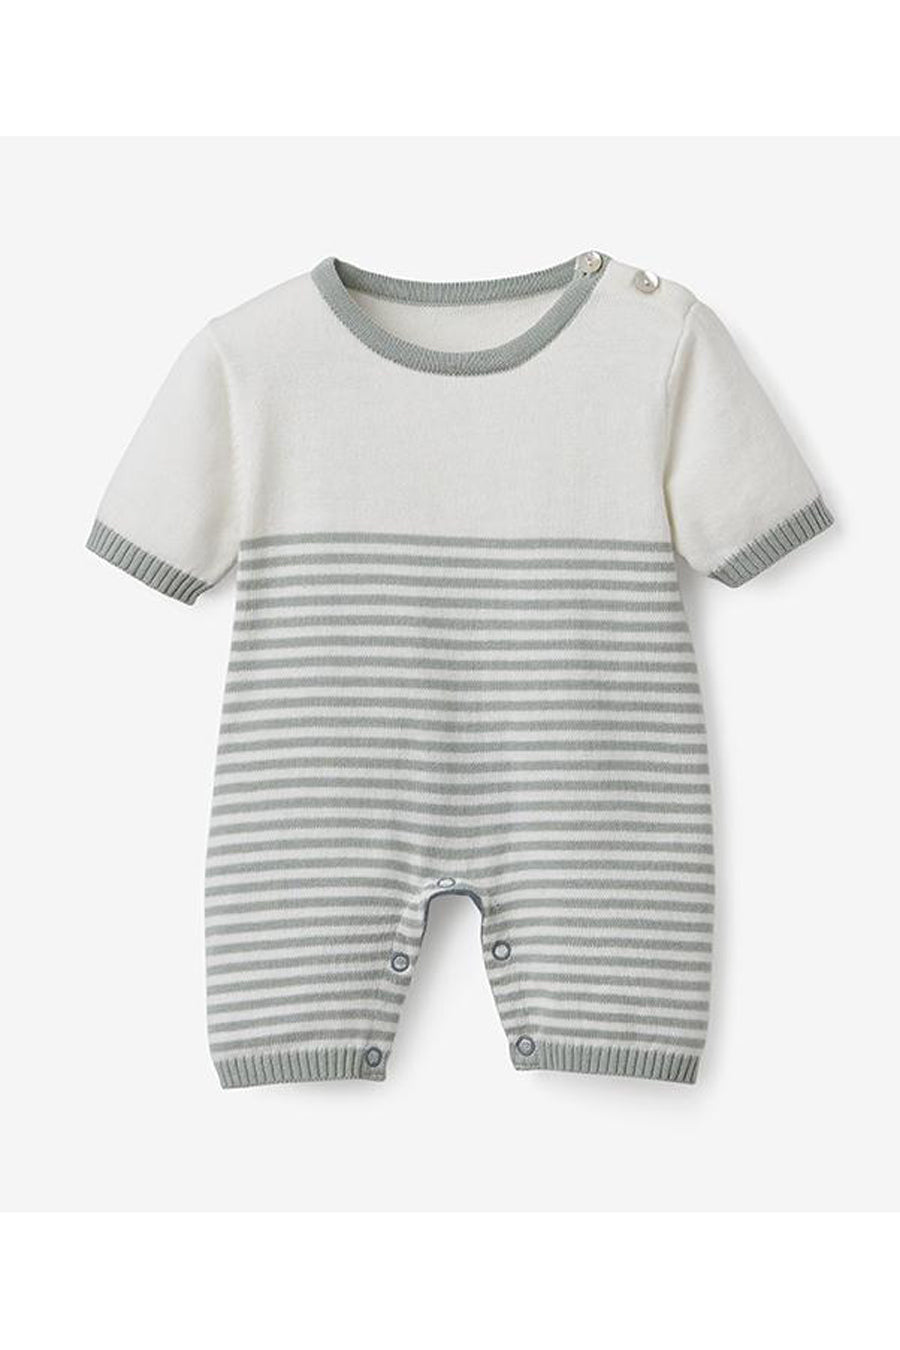 Sage Striped Shortall